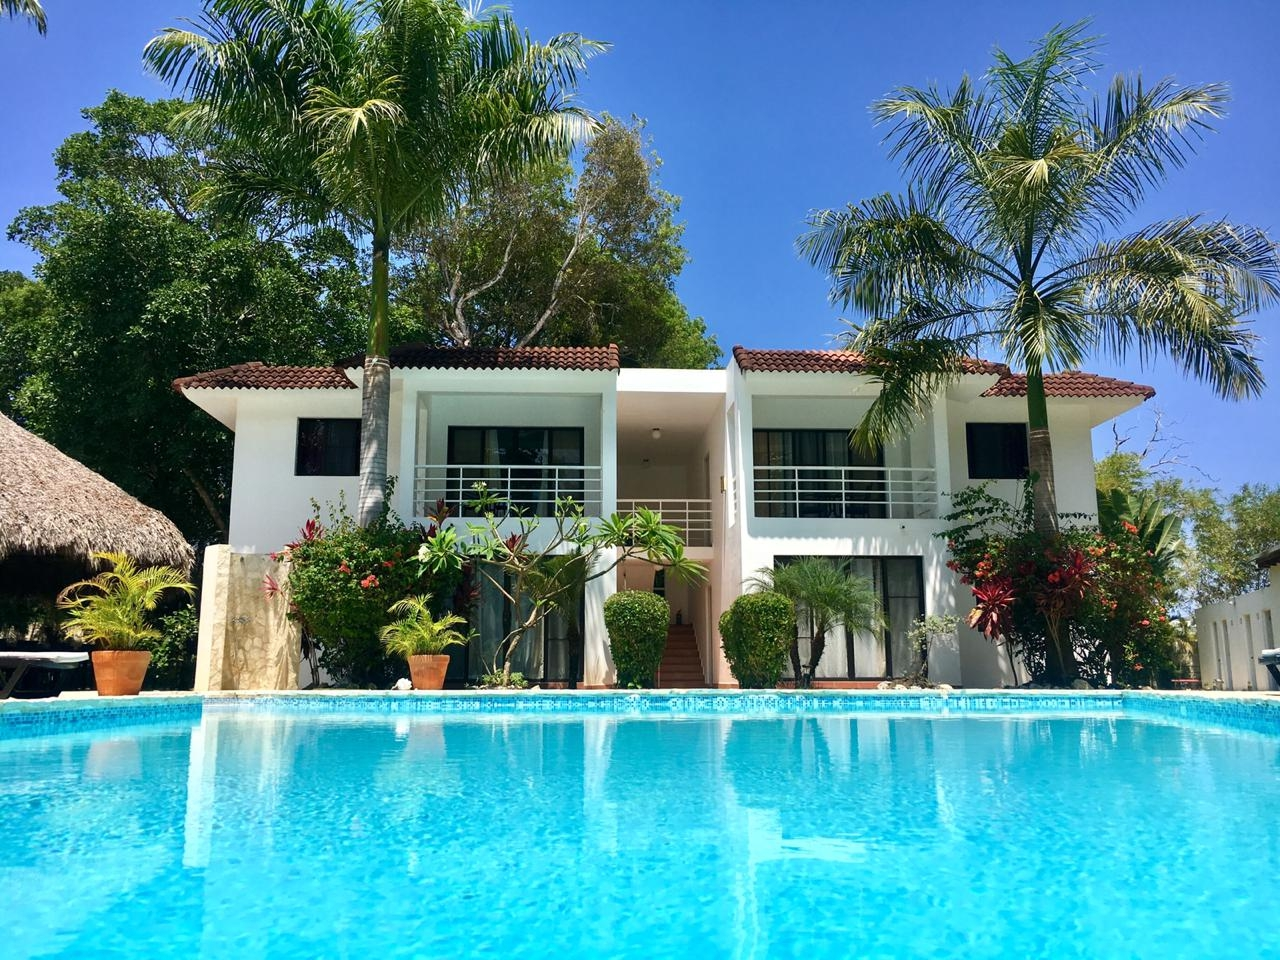 9 Bedroom Compound Rental Sosua